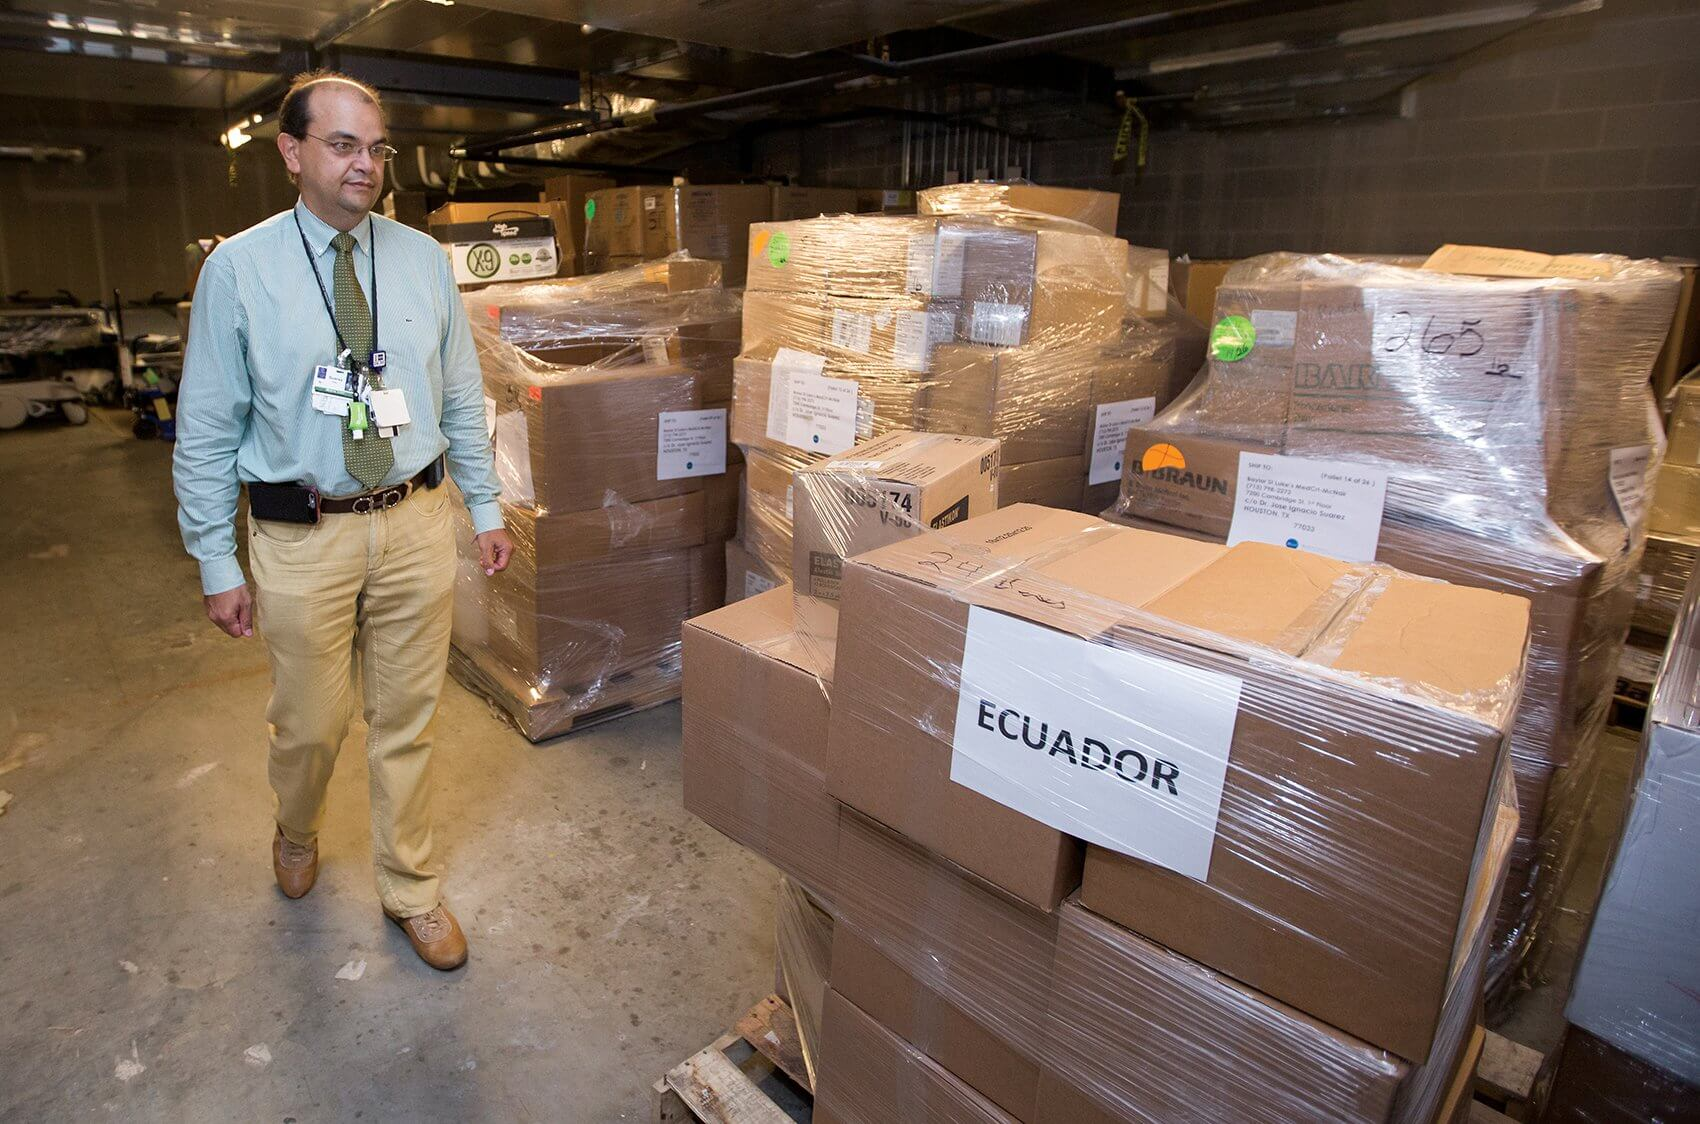 Jose Suarez, M.D., surveys the massive amount of medical supplies collected in response to the recent earthquake in Ecuador.